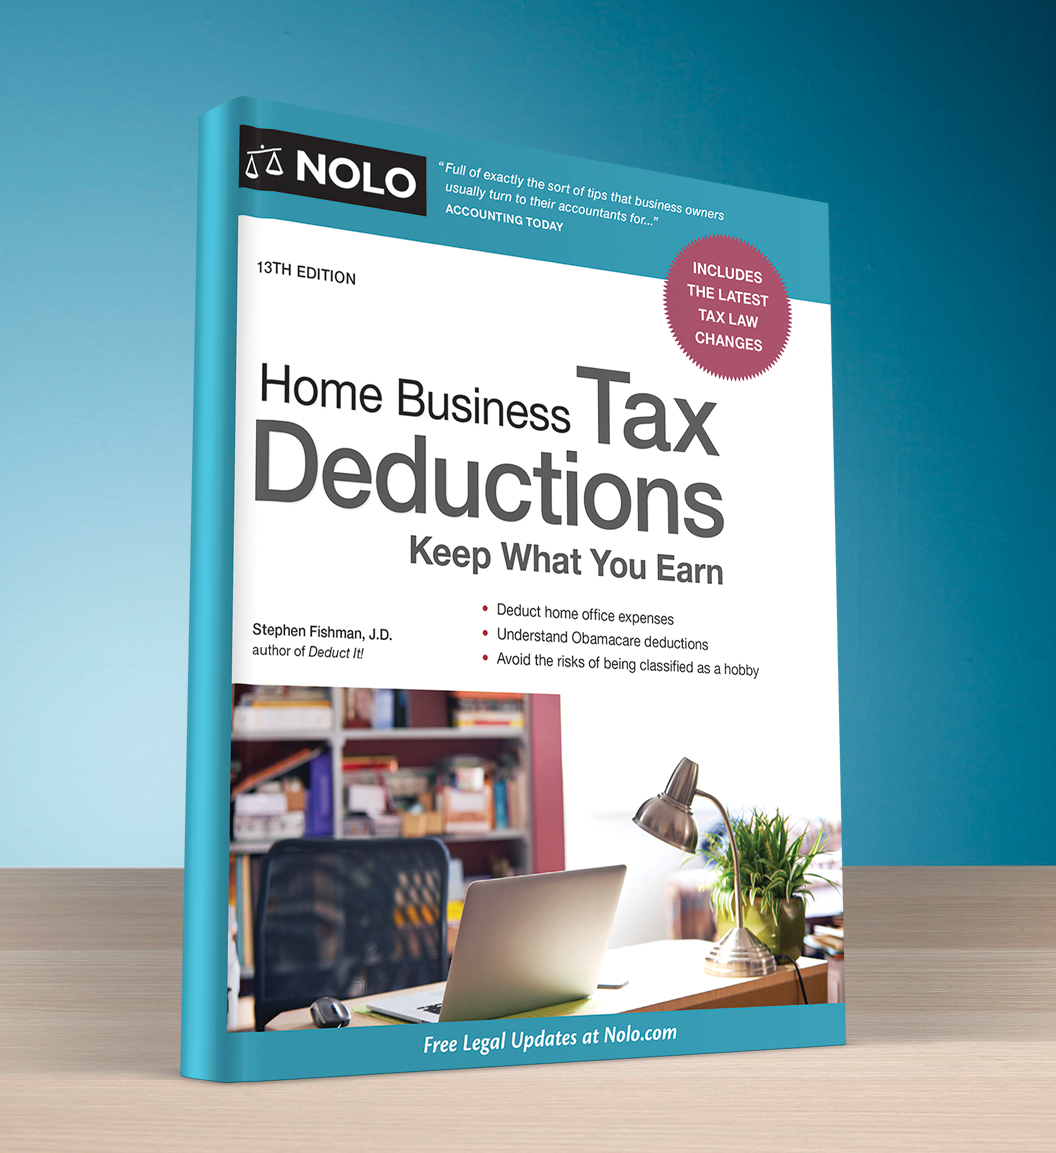 Home Business Tax Deductions (15th edition) - #4750